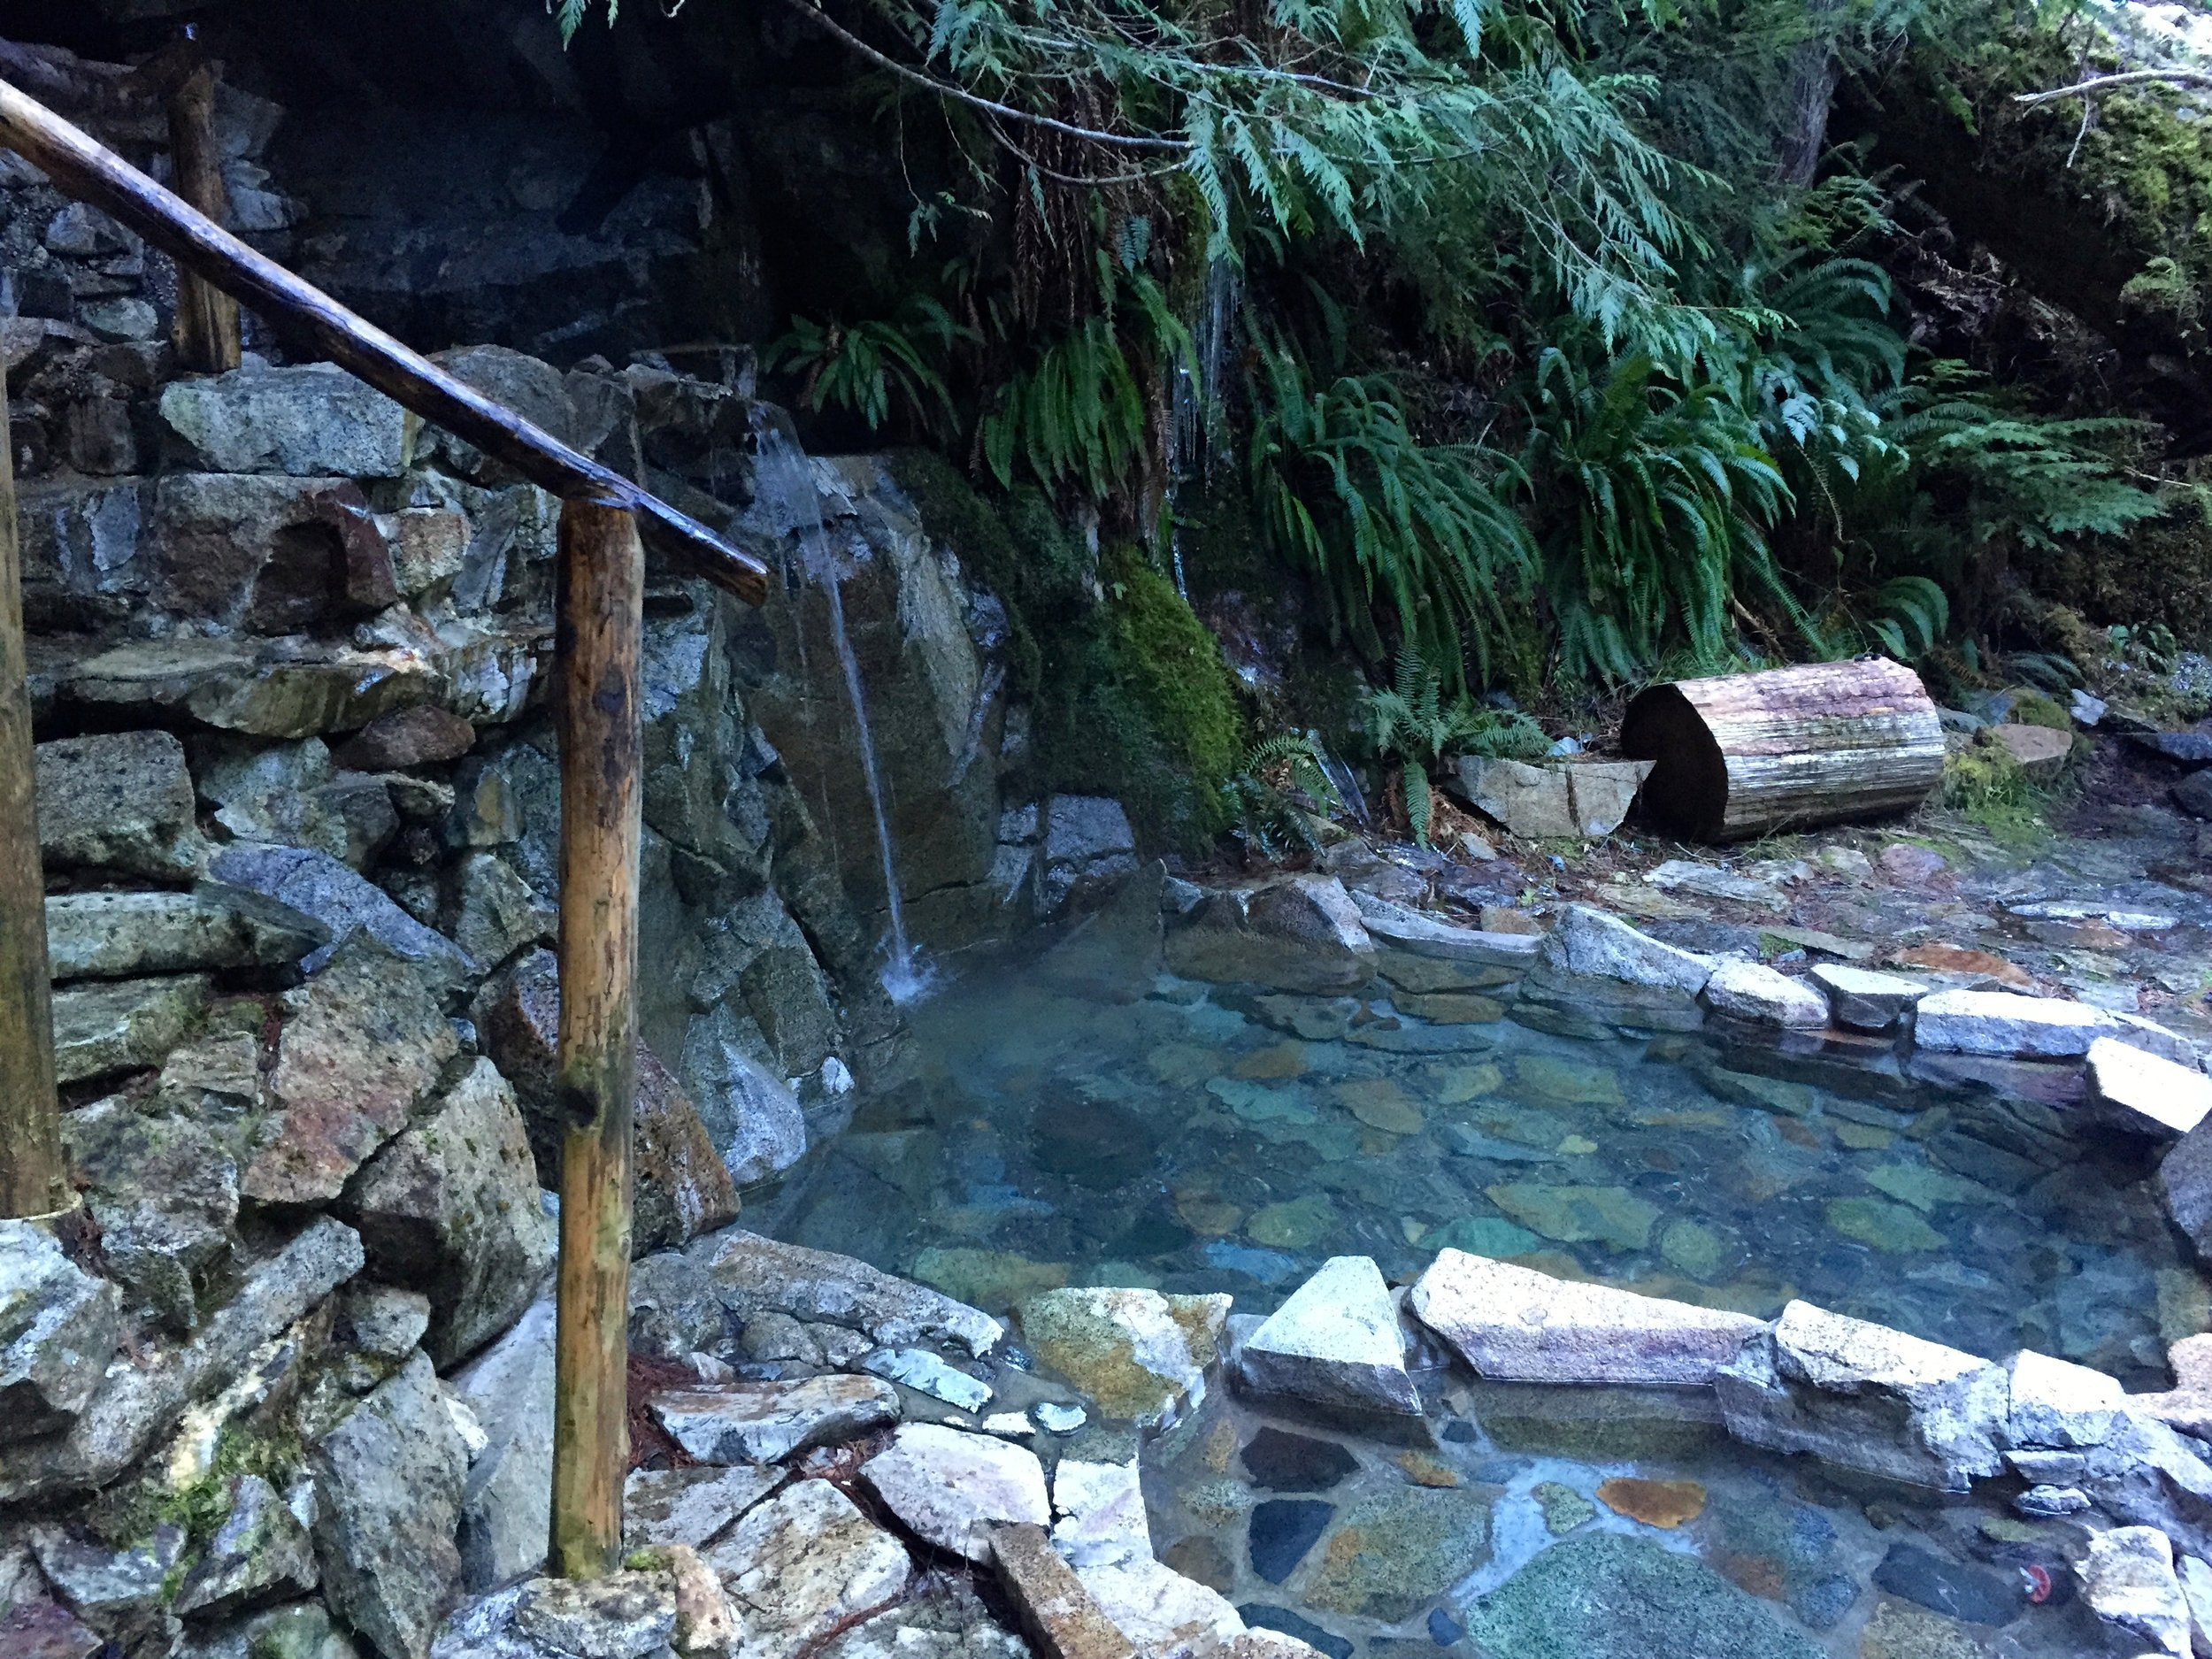 Pool at Goldmeyer Hot Springs, lower Cascade foothills, WA